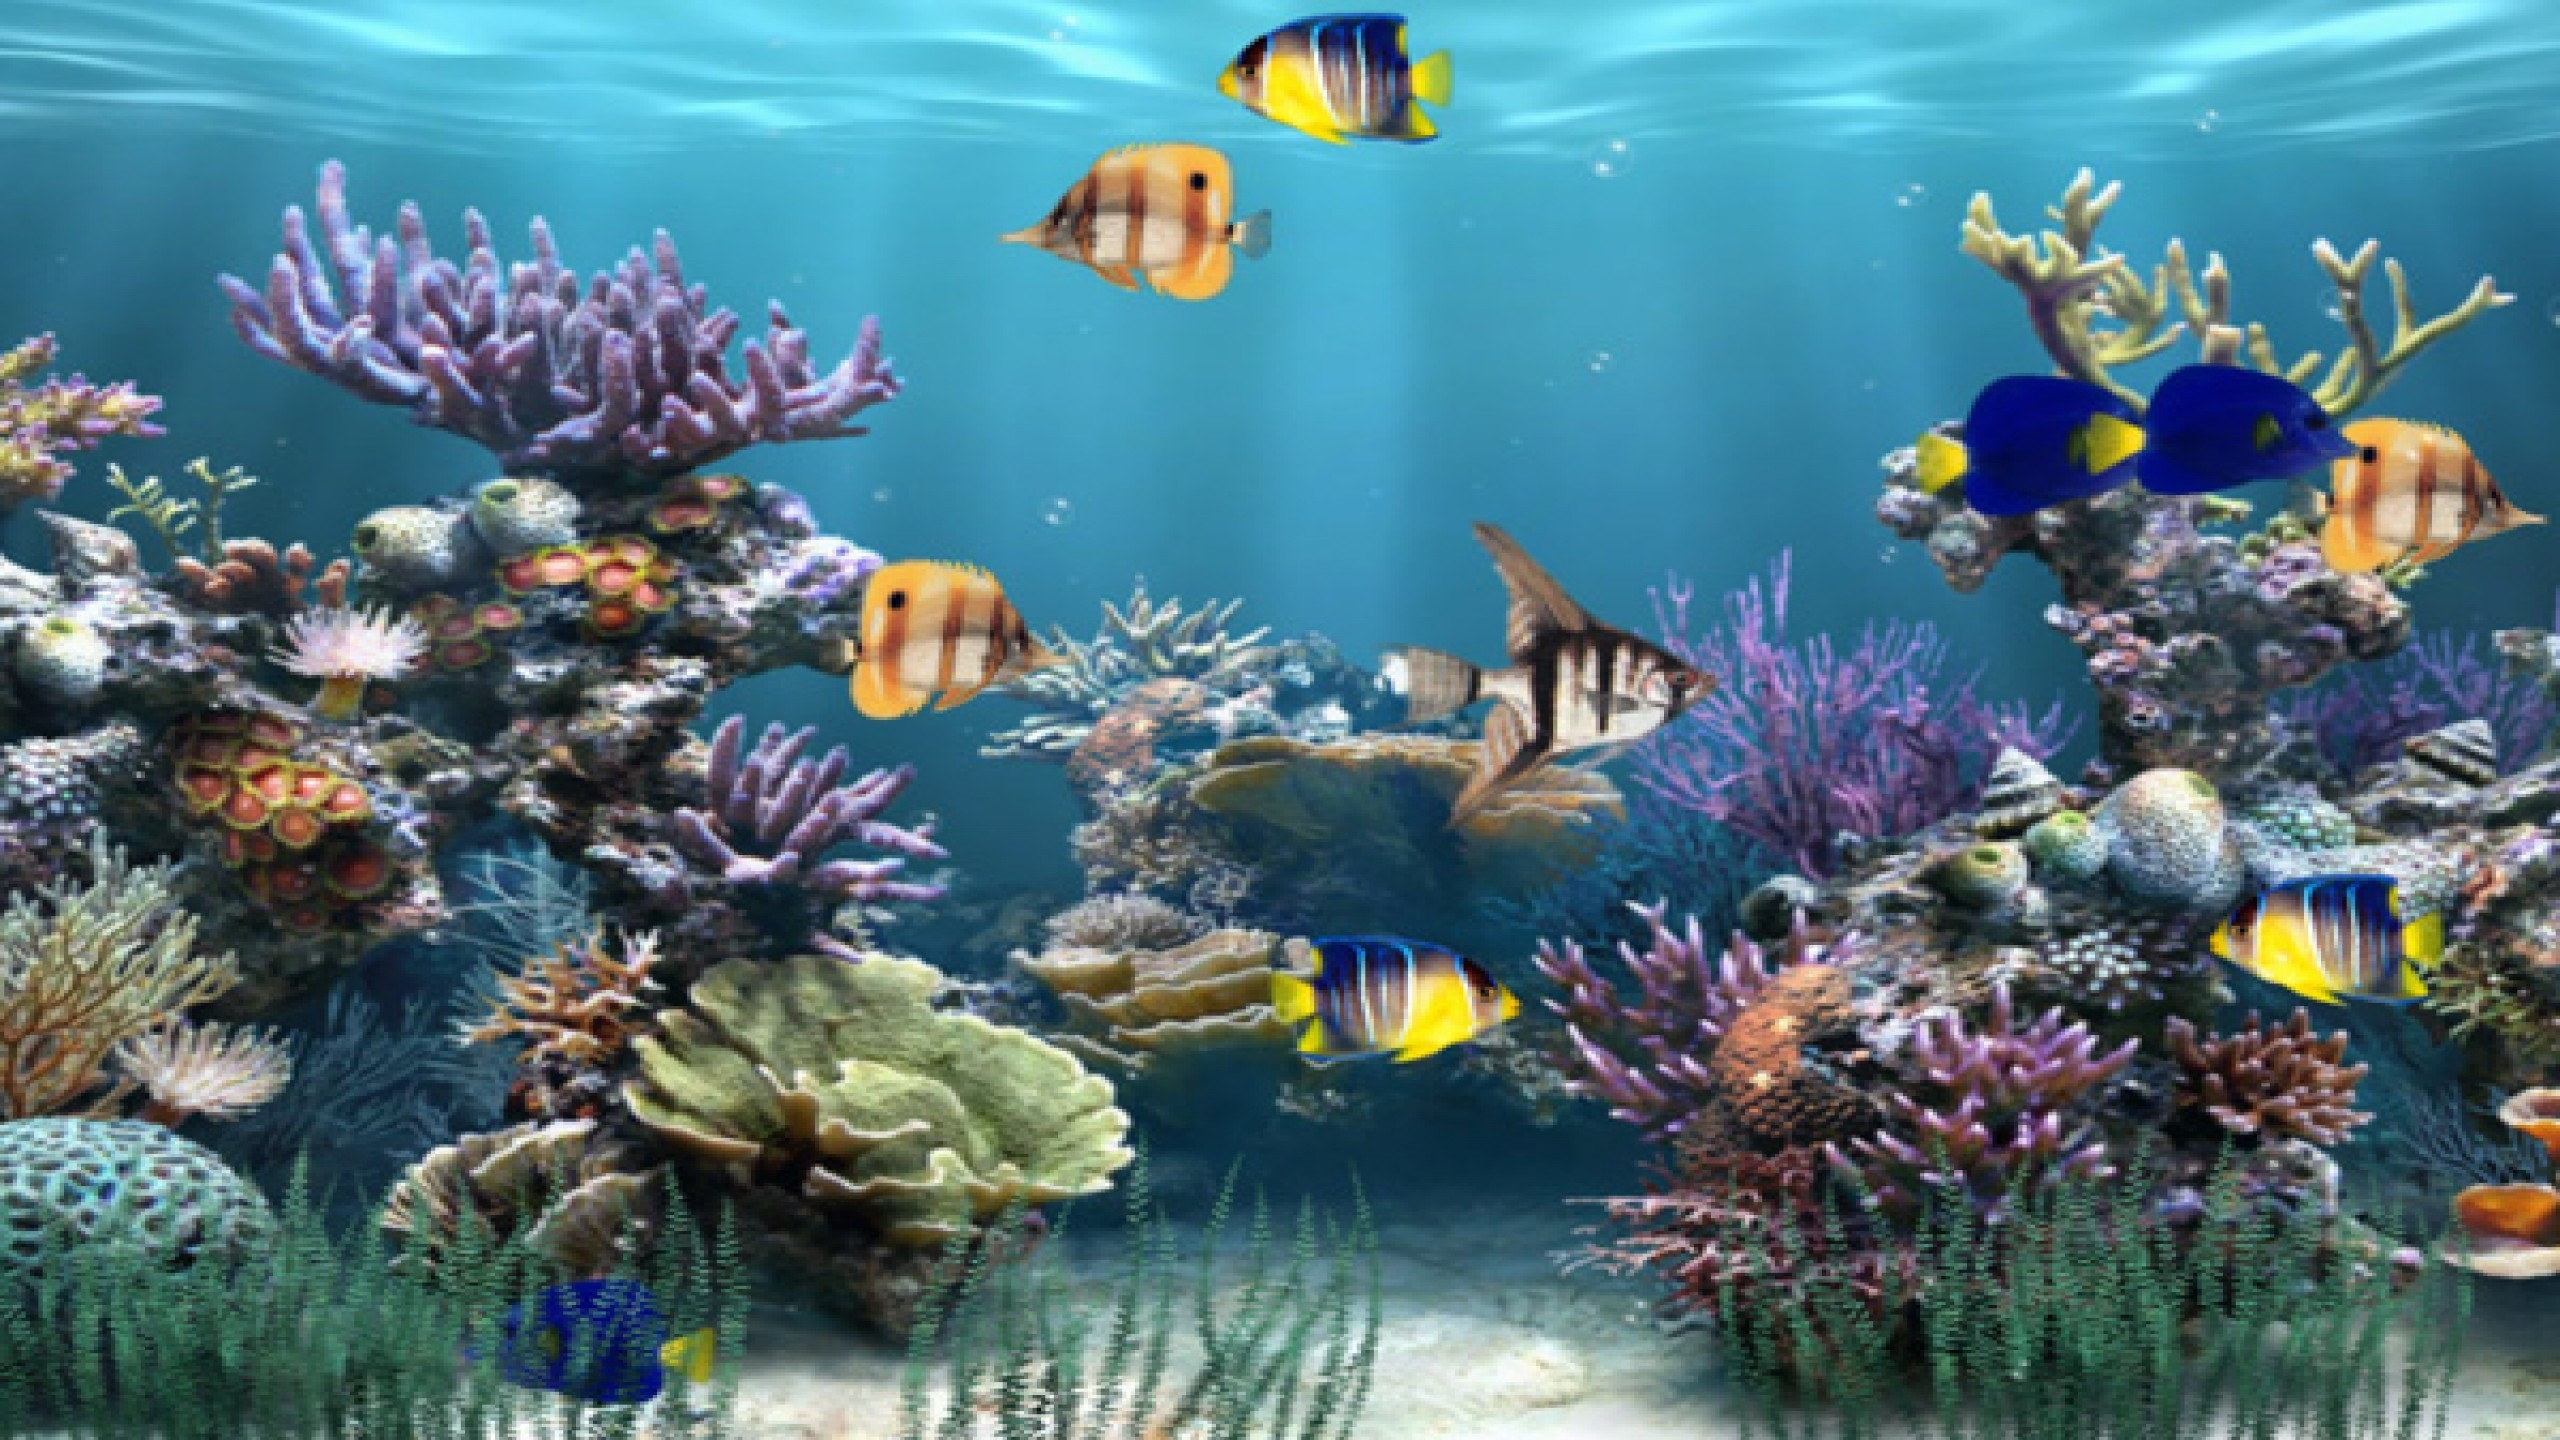 Moving Fish Wallpaper 57 Images